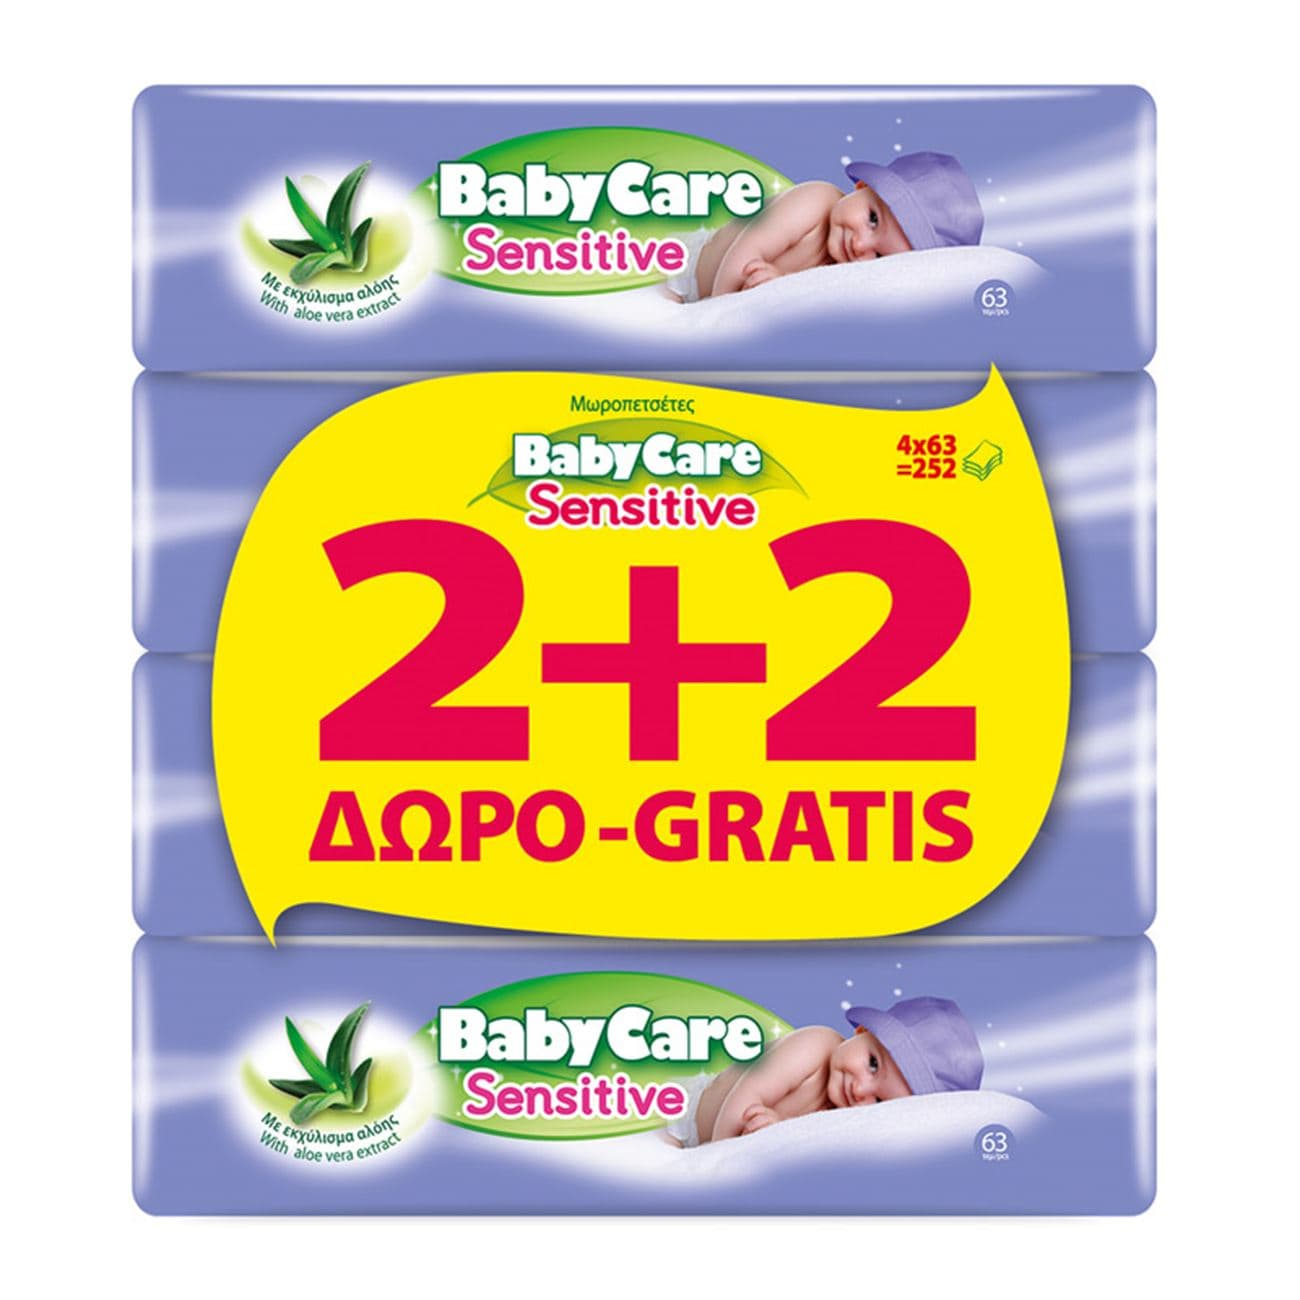 Babycare Sensitive 63x2+2 PCS FREE